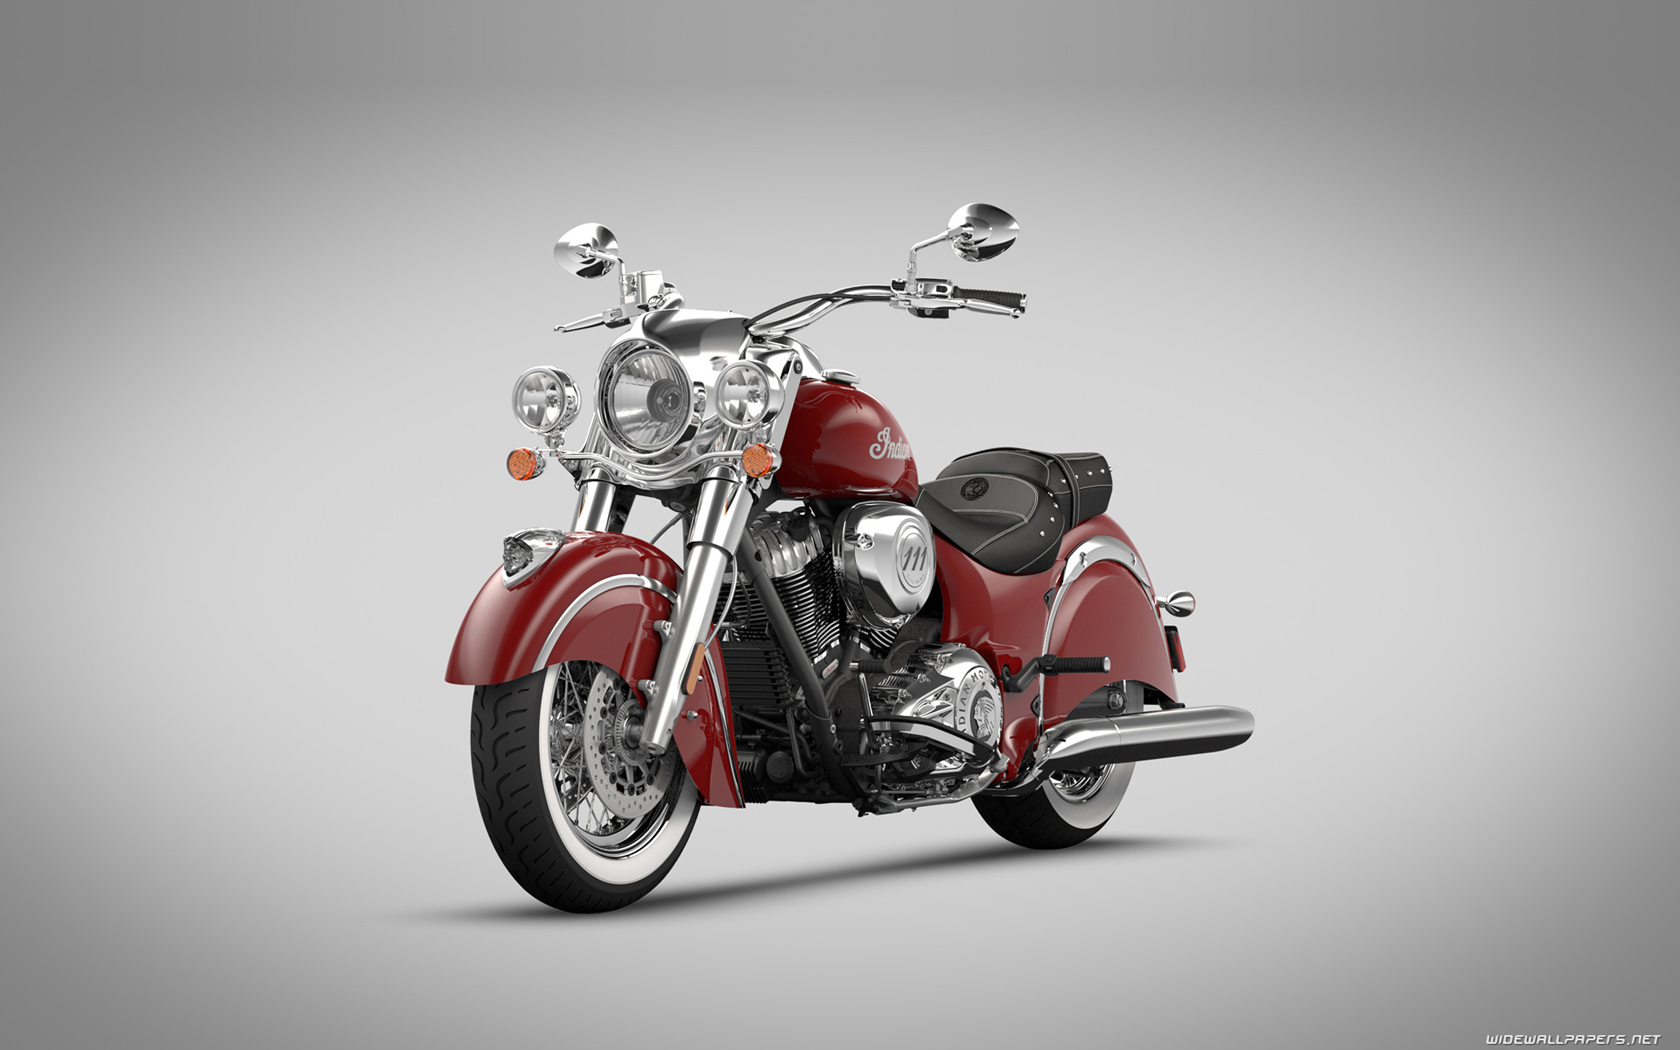 1680x1050 - Indian Motorcycle Desktop 33